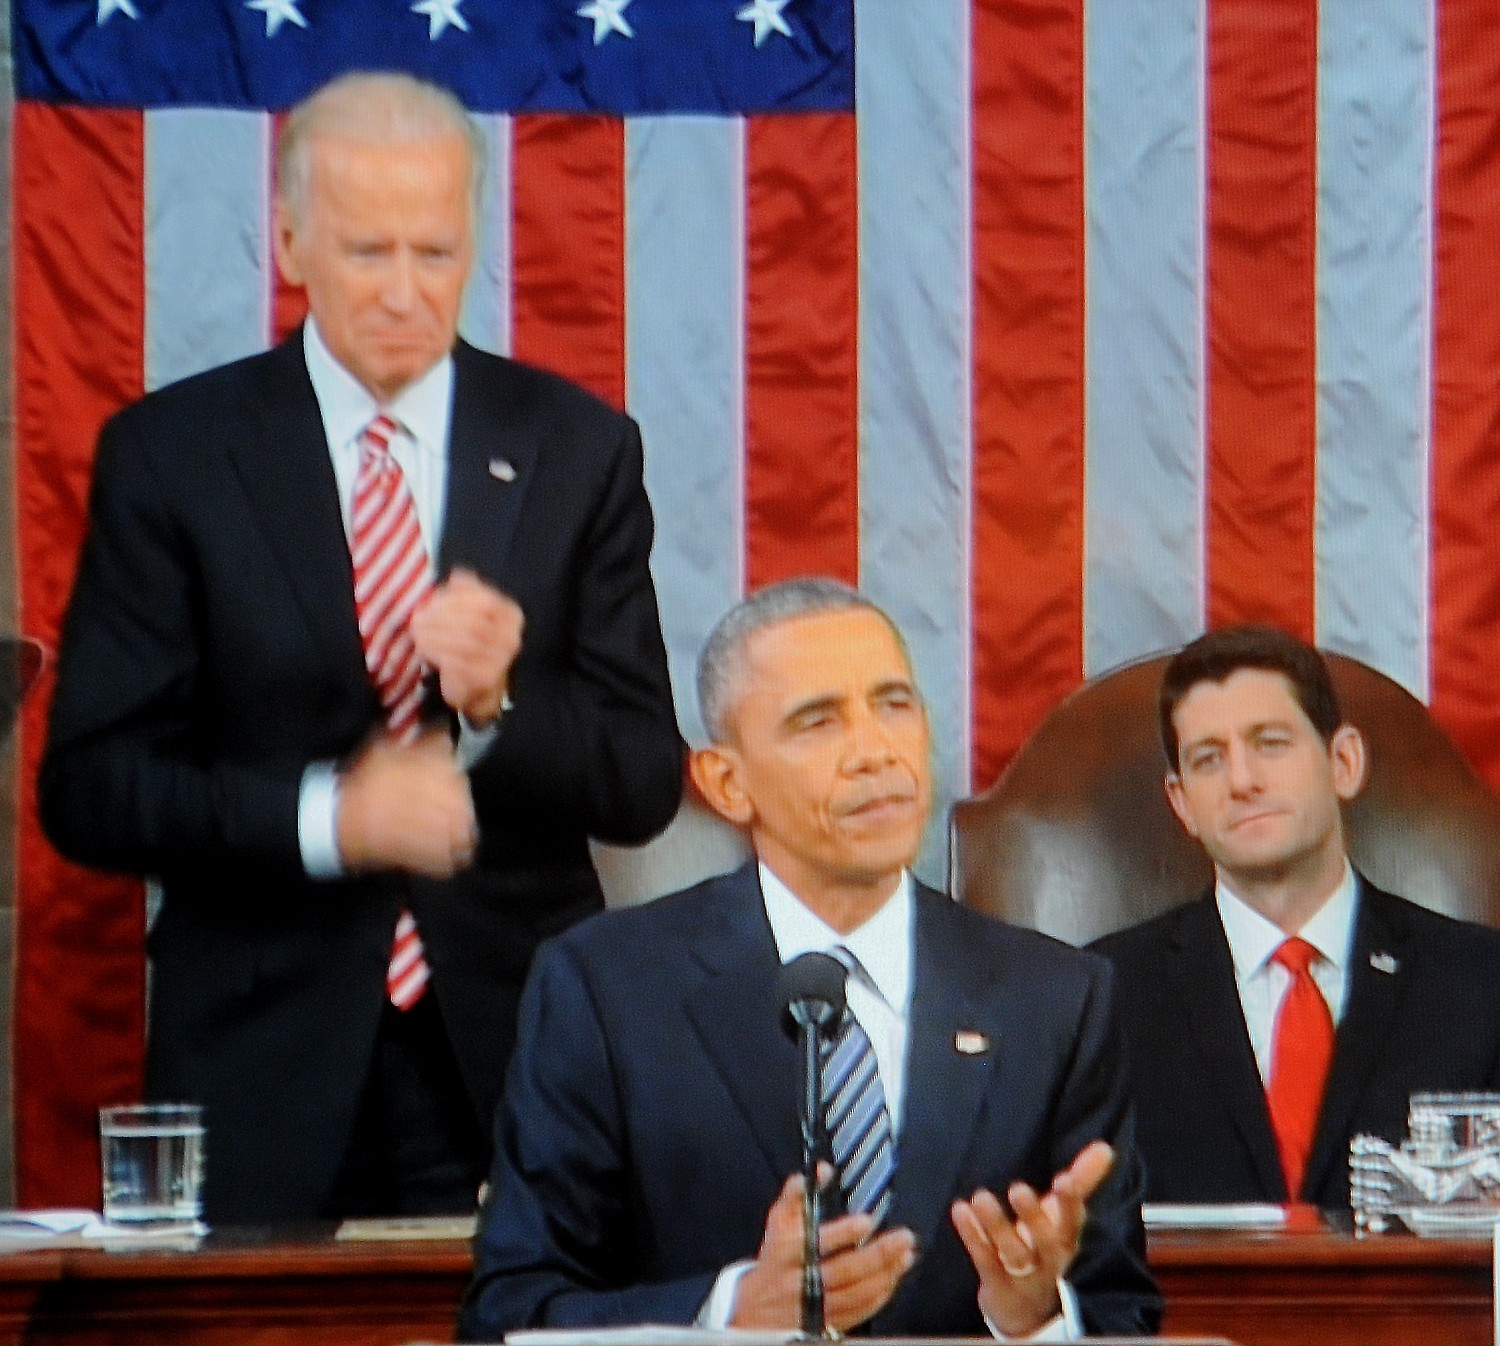 """President Obama, in his final State of the Union, addressed the ISIL/terror threat saying, """"But as we focus on destroying ISIL, over-the-top claims that this is World War III just play into their hands.  Masses of fighters on the back of pickup trucks, twisted souls plotting in apartments or garages -- they pose an enormous danger to civilians; they have to be stopped.  But they do not threaten our national existence.  That is the story ISIL wants to tell.  That's the kind of propaganda they use to recruit.  We don't need to build them up to show that we're serious, and we sure don't need to push away vital allies in this fight by echoing the lie that ISIL is somehow representative of one of the world's largest religions.  (We just need to call them what they are -- killers and fanatics who have to be rooted out, hunted down, and destroyed. And that's exactly what we're doing."""" © 2016 Karen Rubin/news-photos-features.com"""